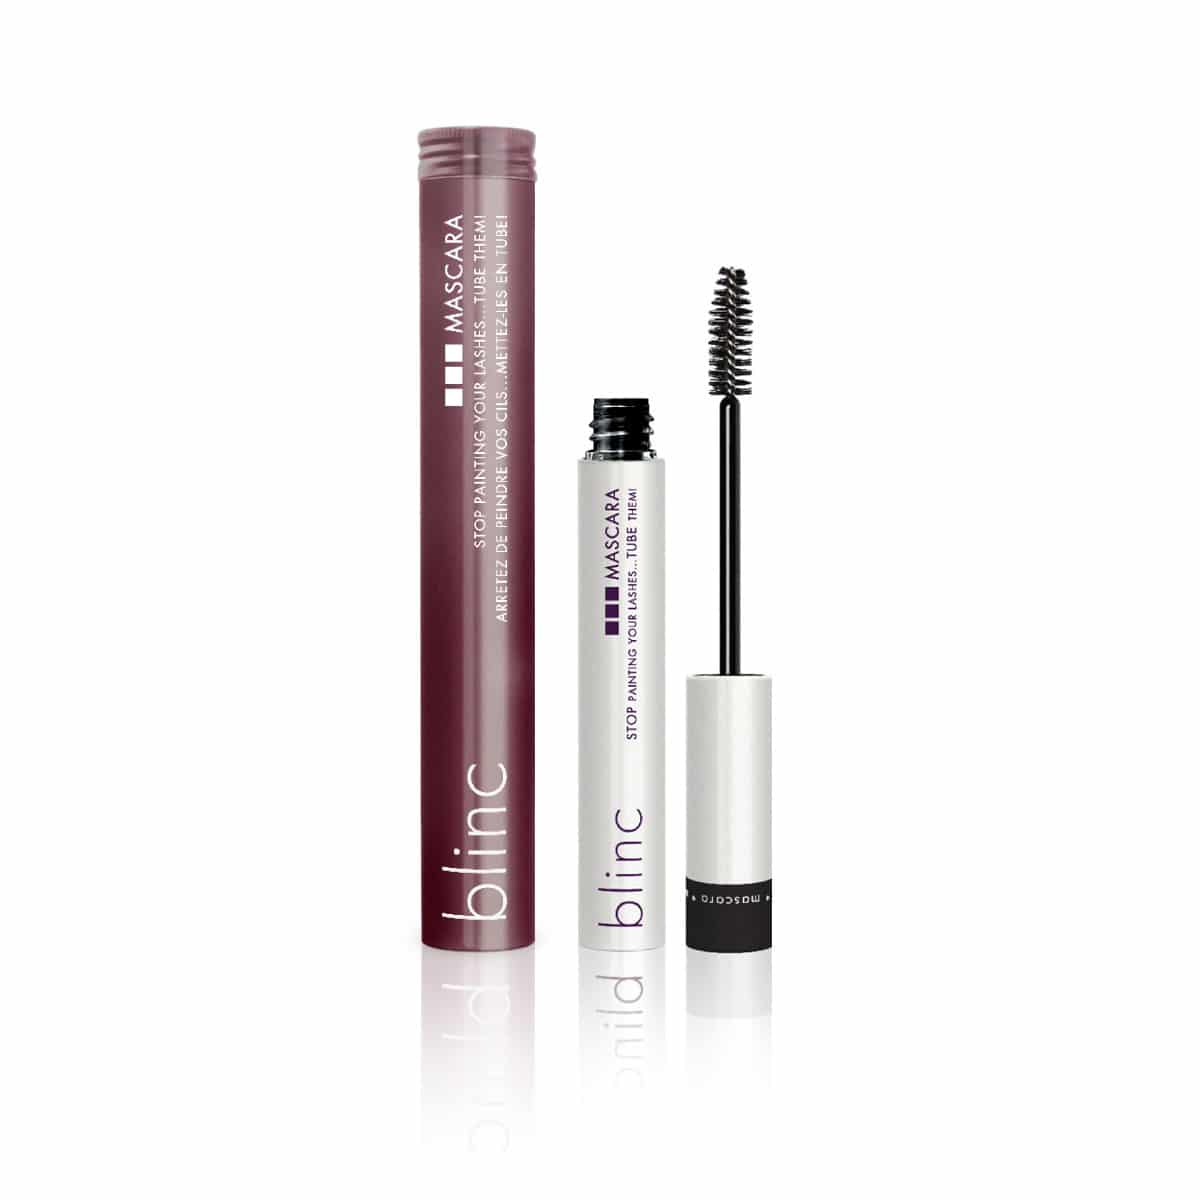 Blinc Mascara - The Beauty Lounge